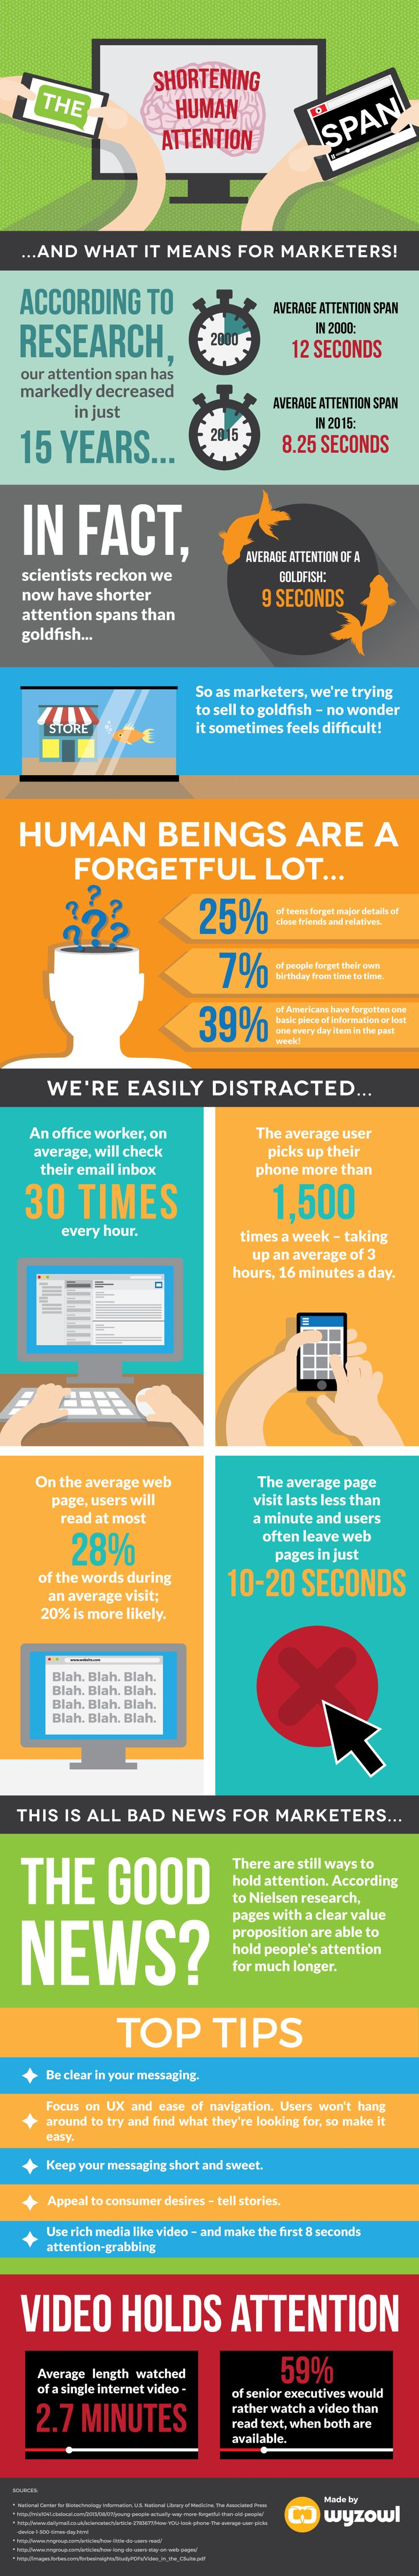 Infographic: People Have Smaller Attention Spans Than Goldfish (Marketing Tips For Overcoming This)